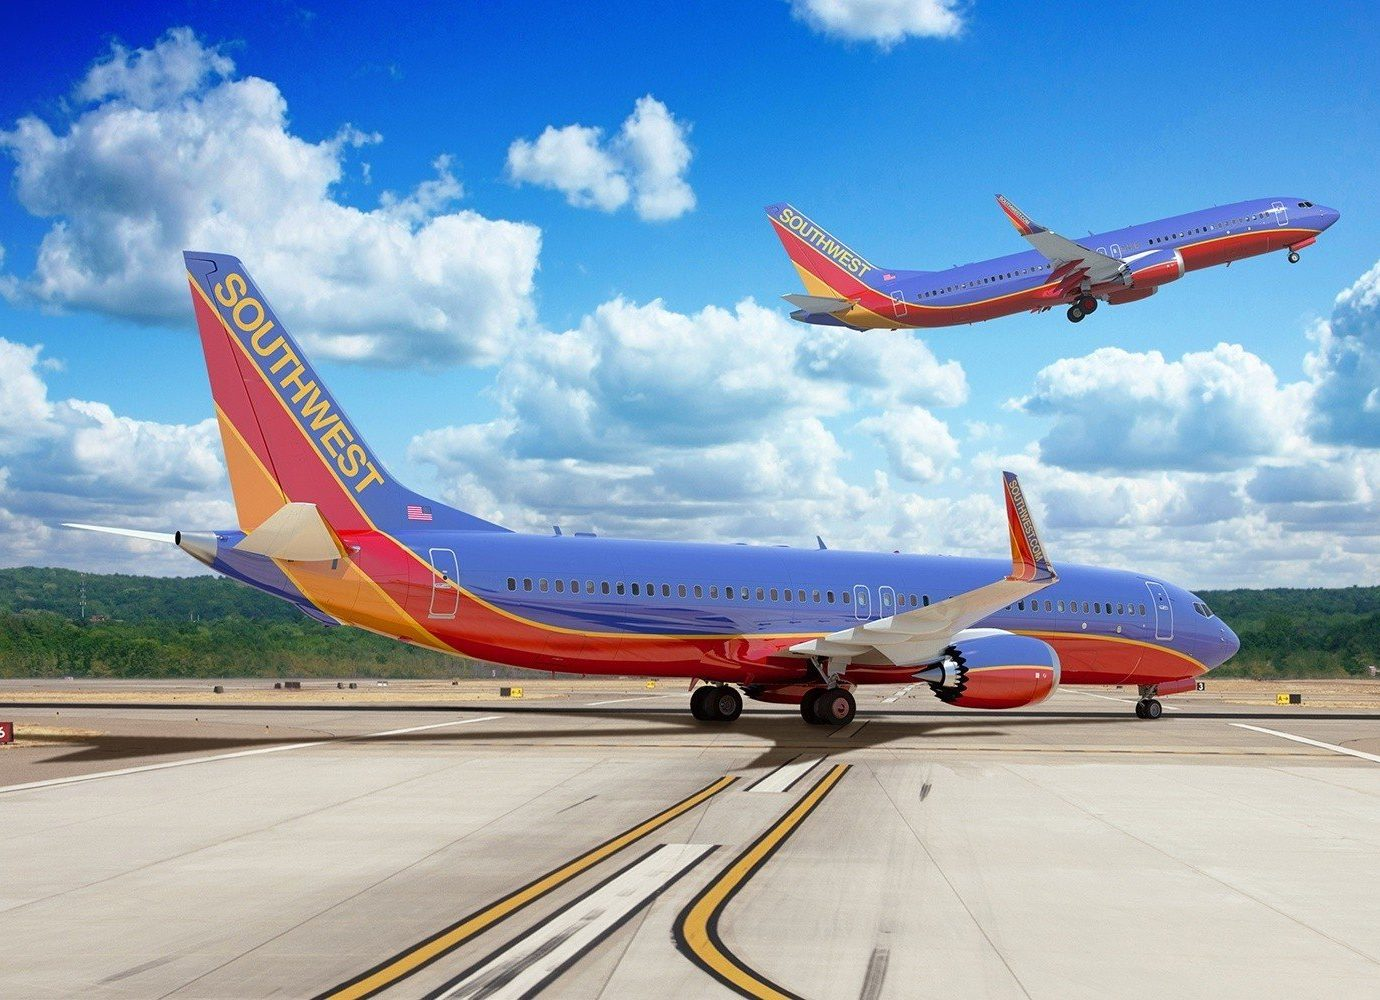 Travel Tips sky plane outdoor ground airline runway airliner airplane road vehicle boeing 737 airport air travel narrow body aircraft aircraft boeing boeing 737 next generation tarmac parked aviation transport jet aircraft atmosphere of earth airbus a330 wide body aircraft aerospace engineering flight boeing 767 takeoff wing blue day